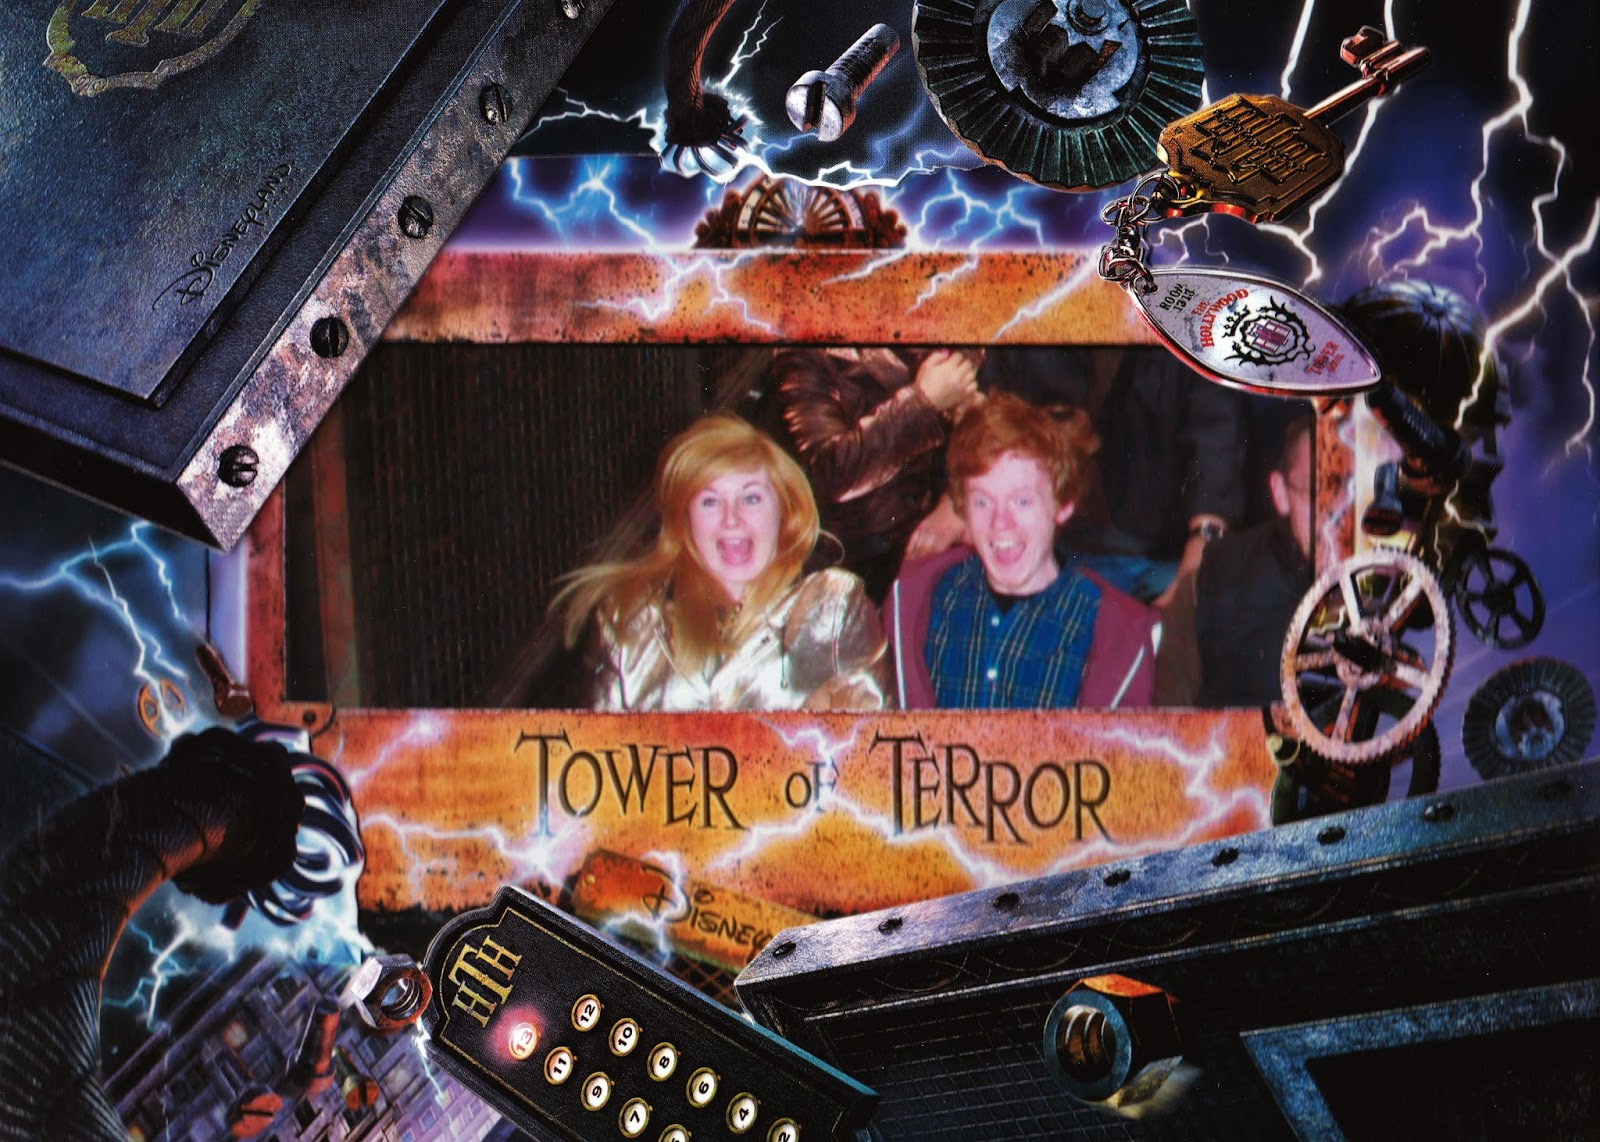 A ride photograph taken of us on the Tower of Terror